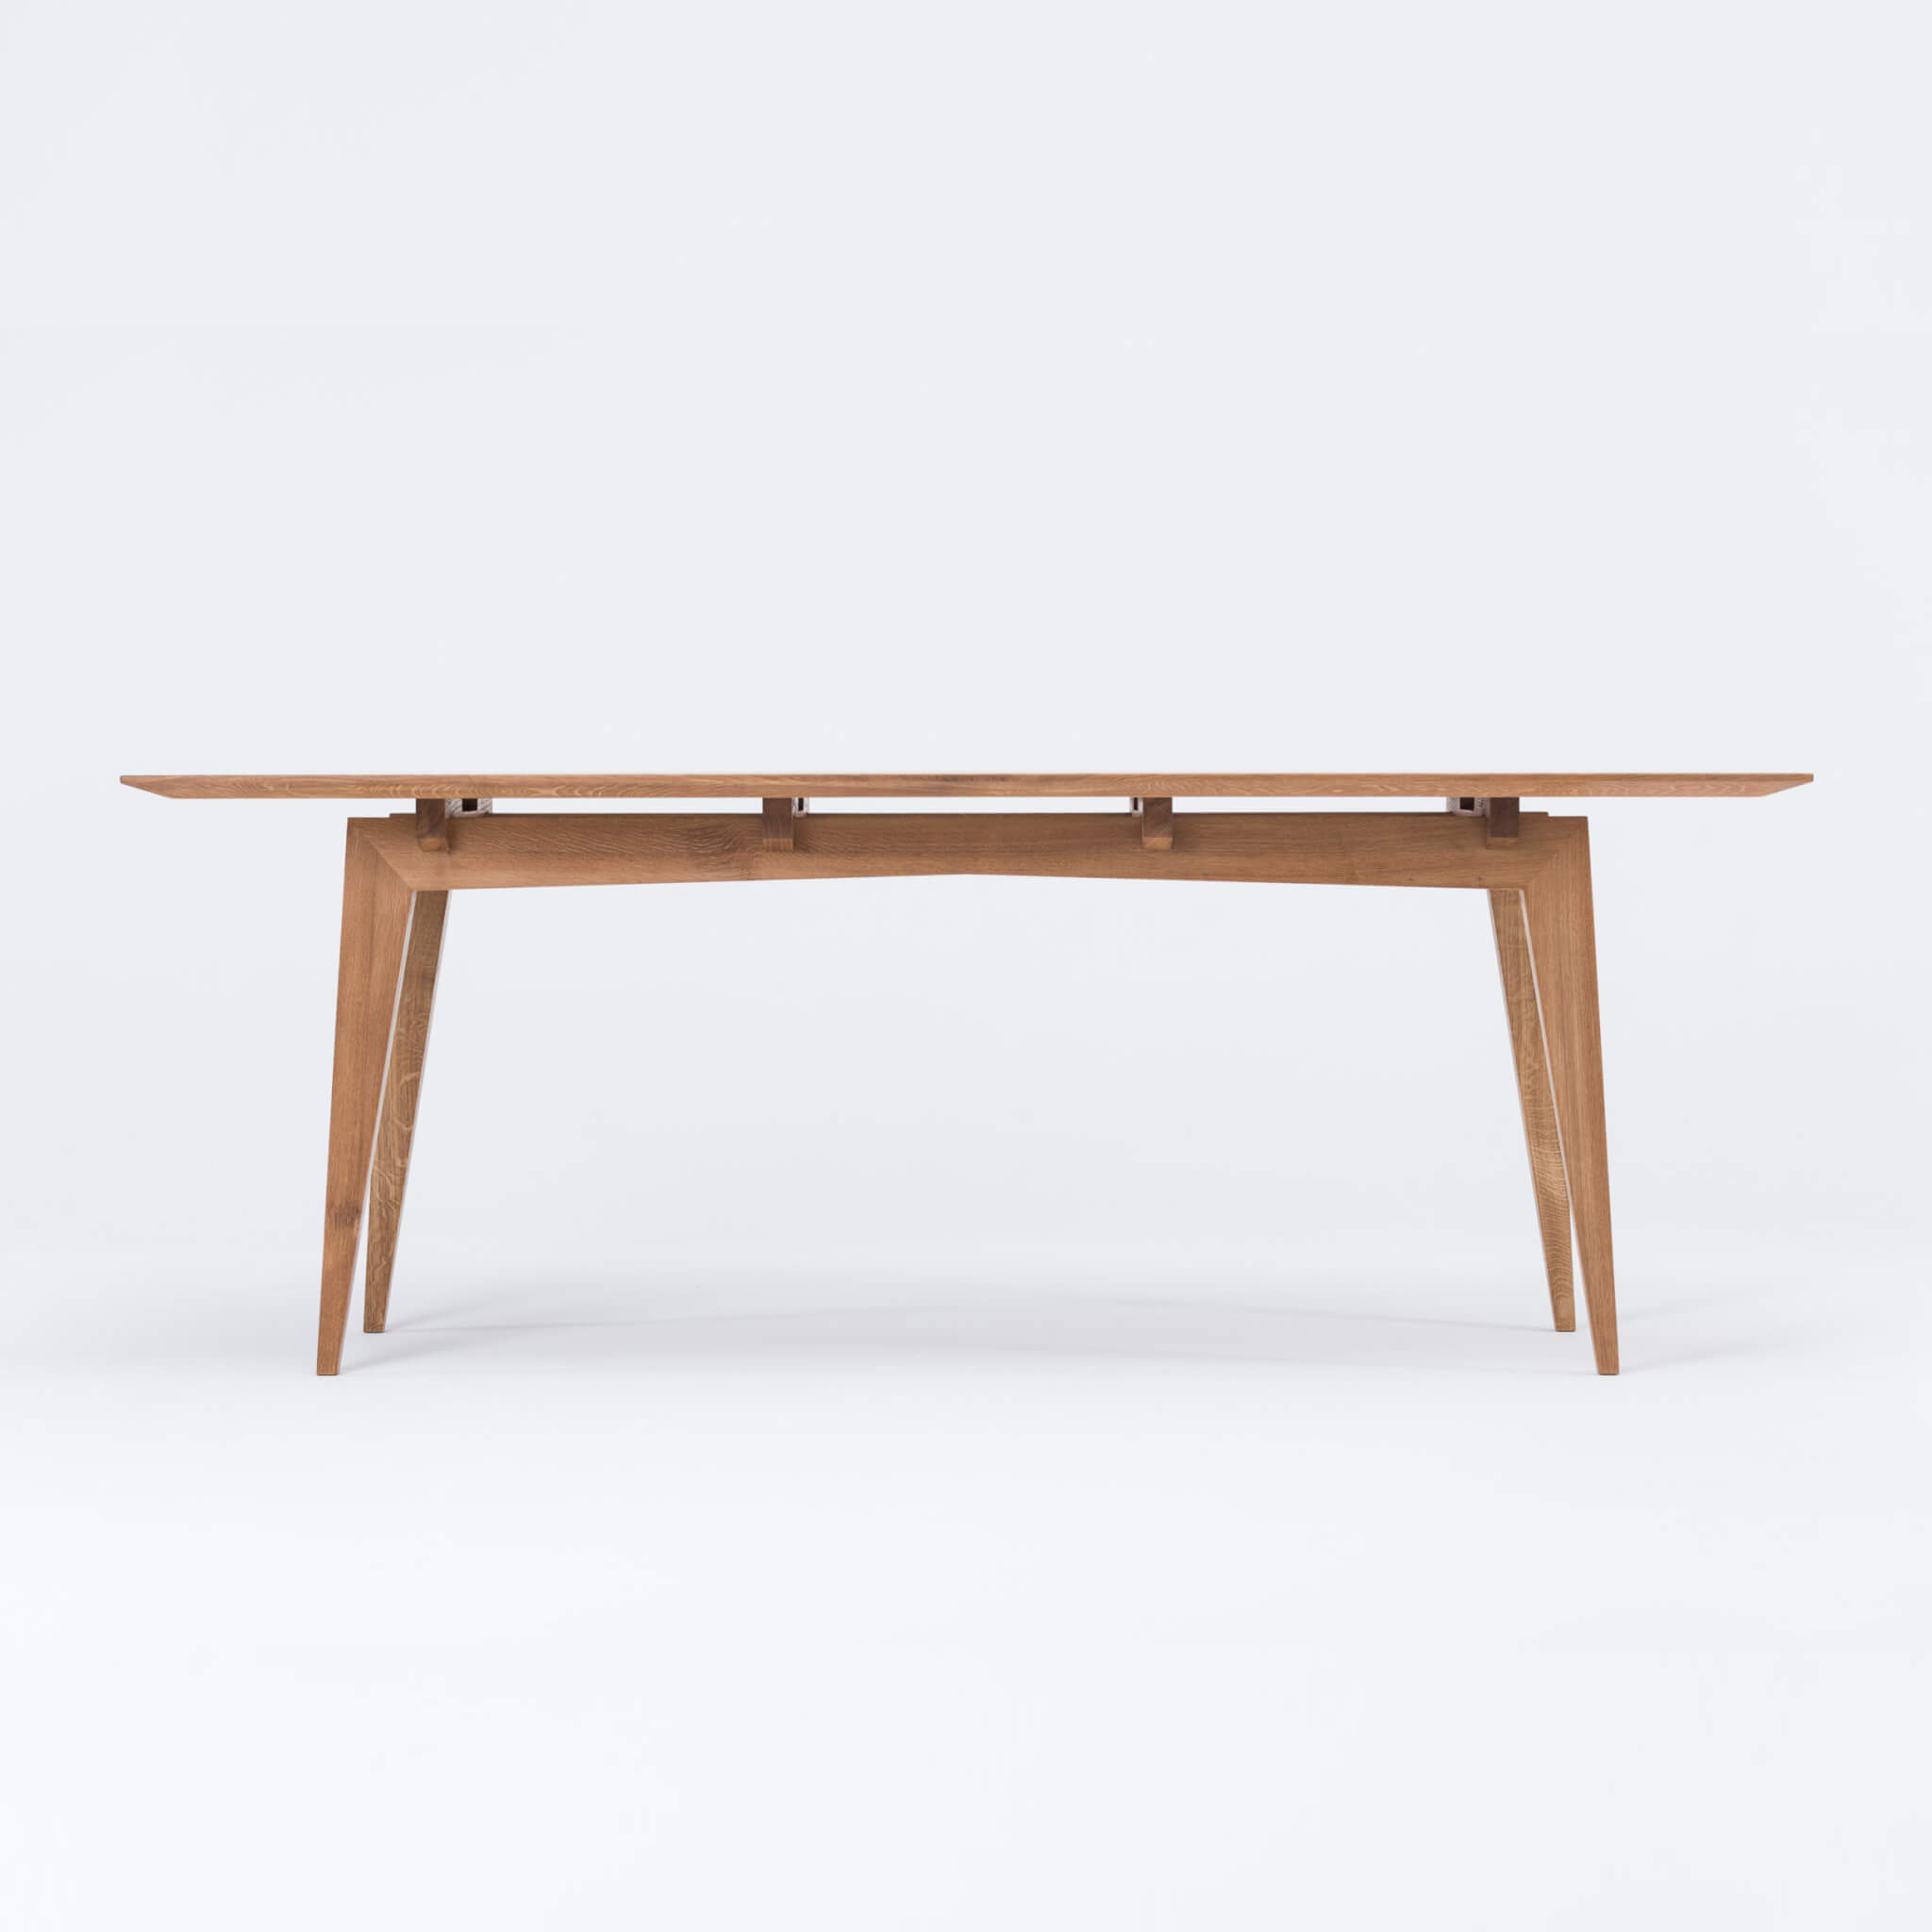 tamaza-stol-table-oak-debowy-stfurniture.com-sq